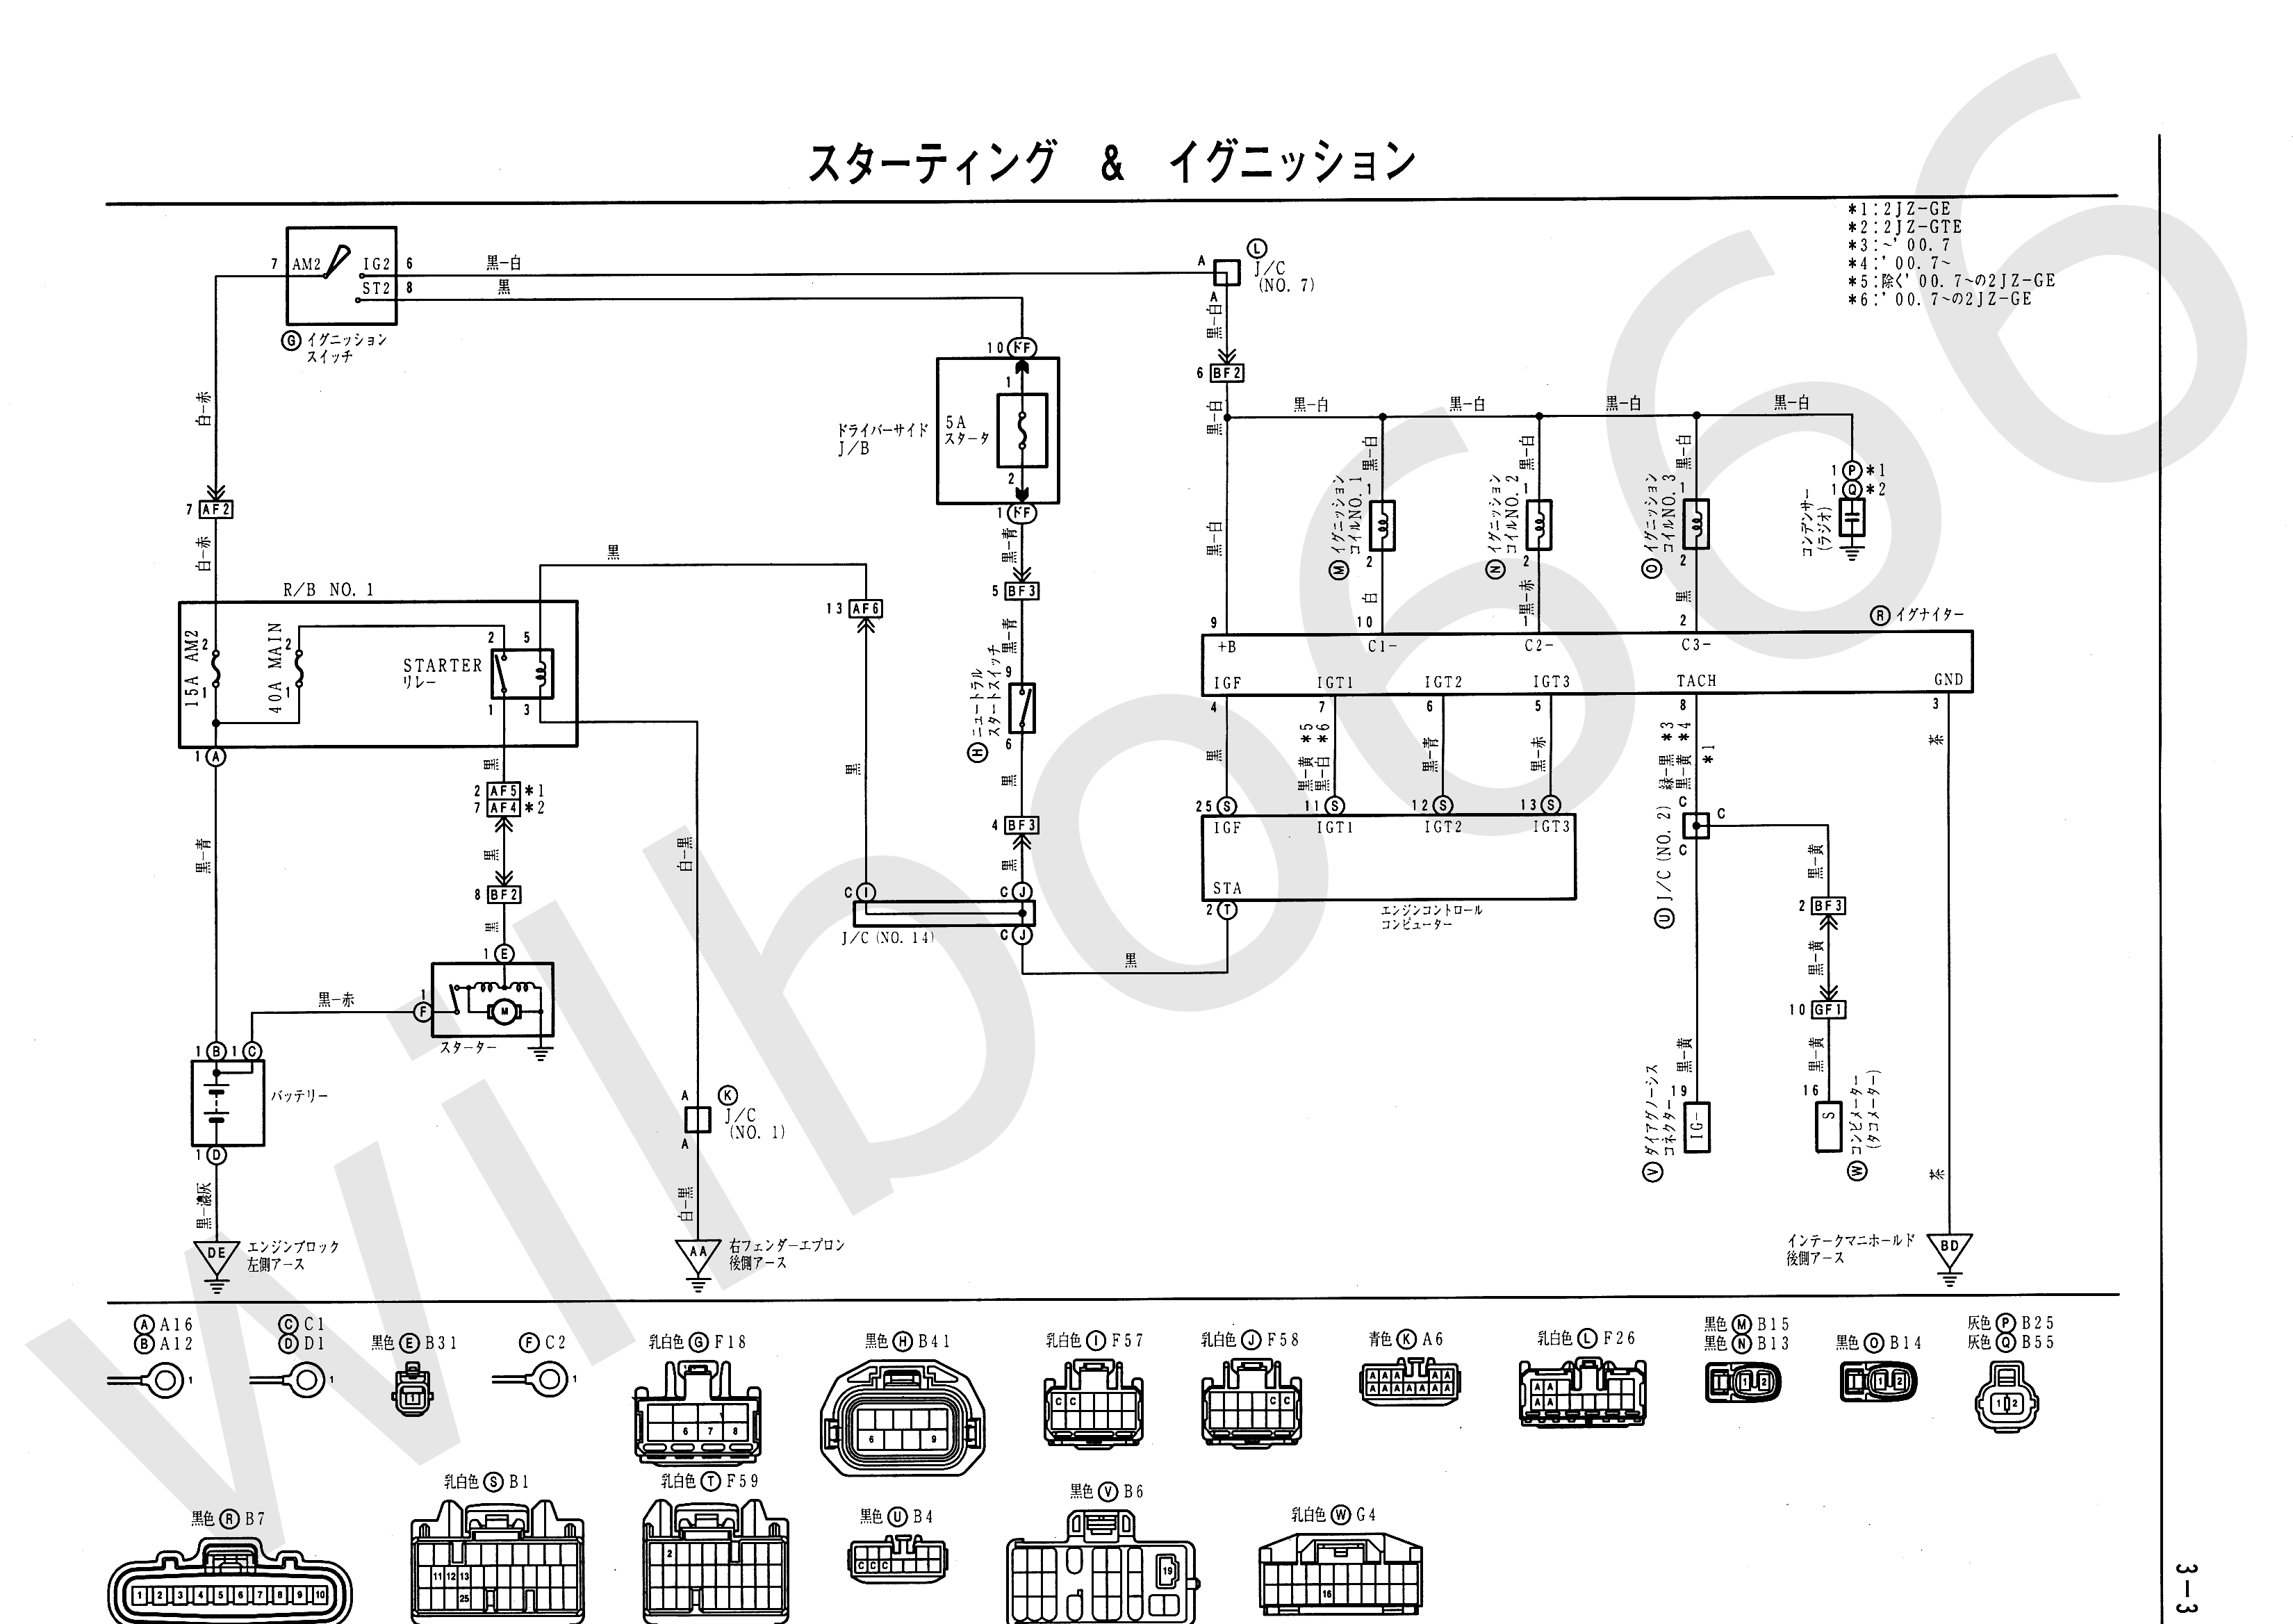 96 Camry Remote Start Wiring Diagram | Wiring Liry on valve key, honda key, body key, flywheel key, wiring a three way switch, wiring diagrams for peterbilt trucks, tractor key, radiator key, ford key,